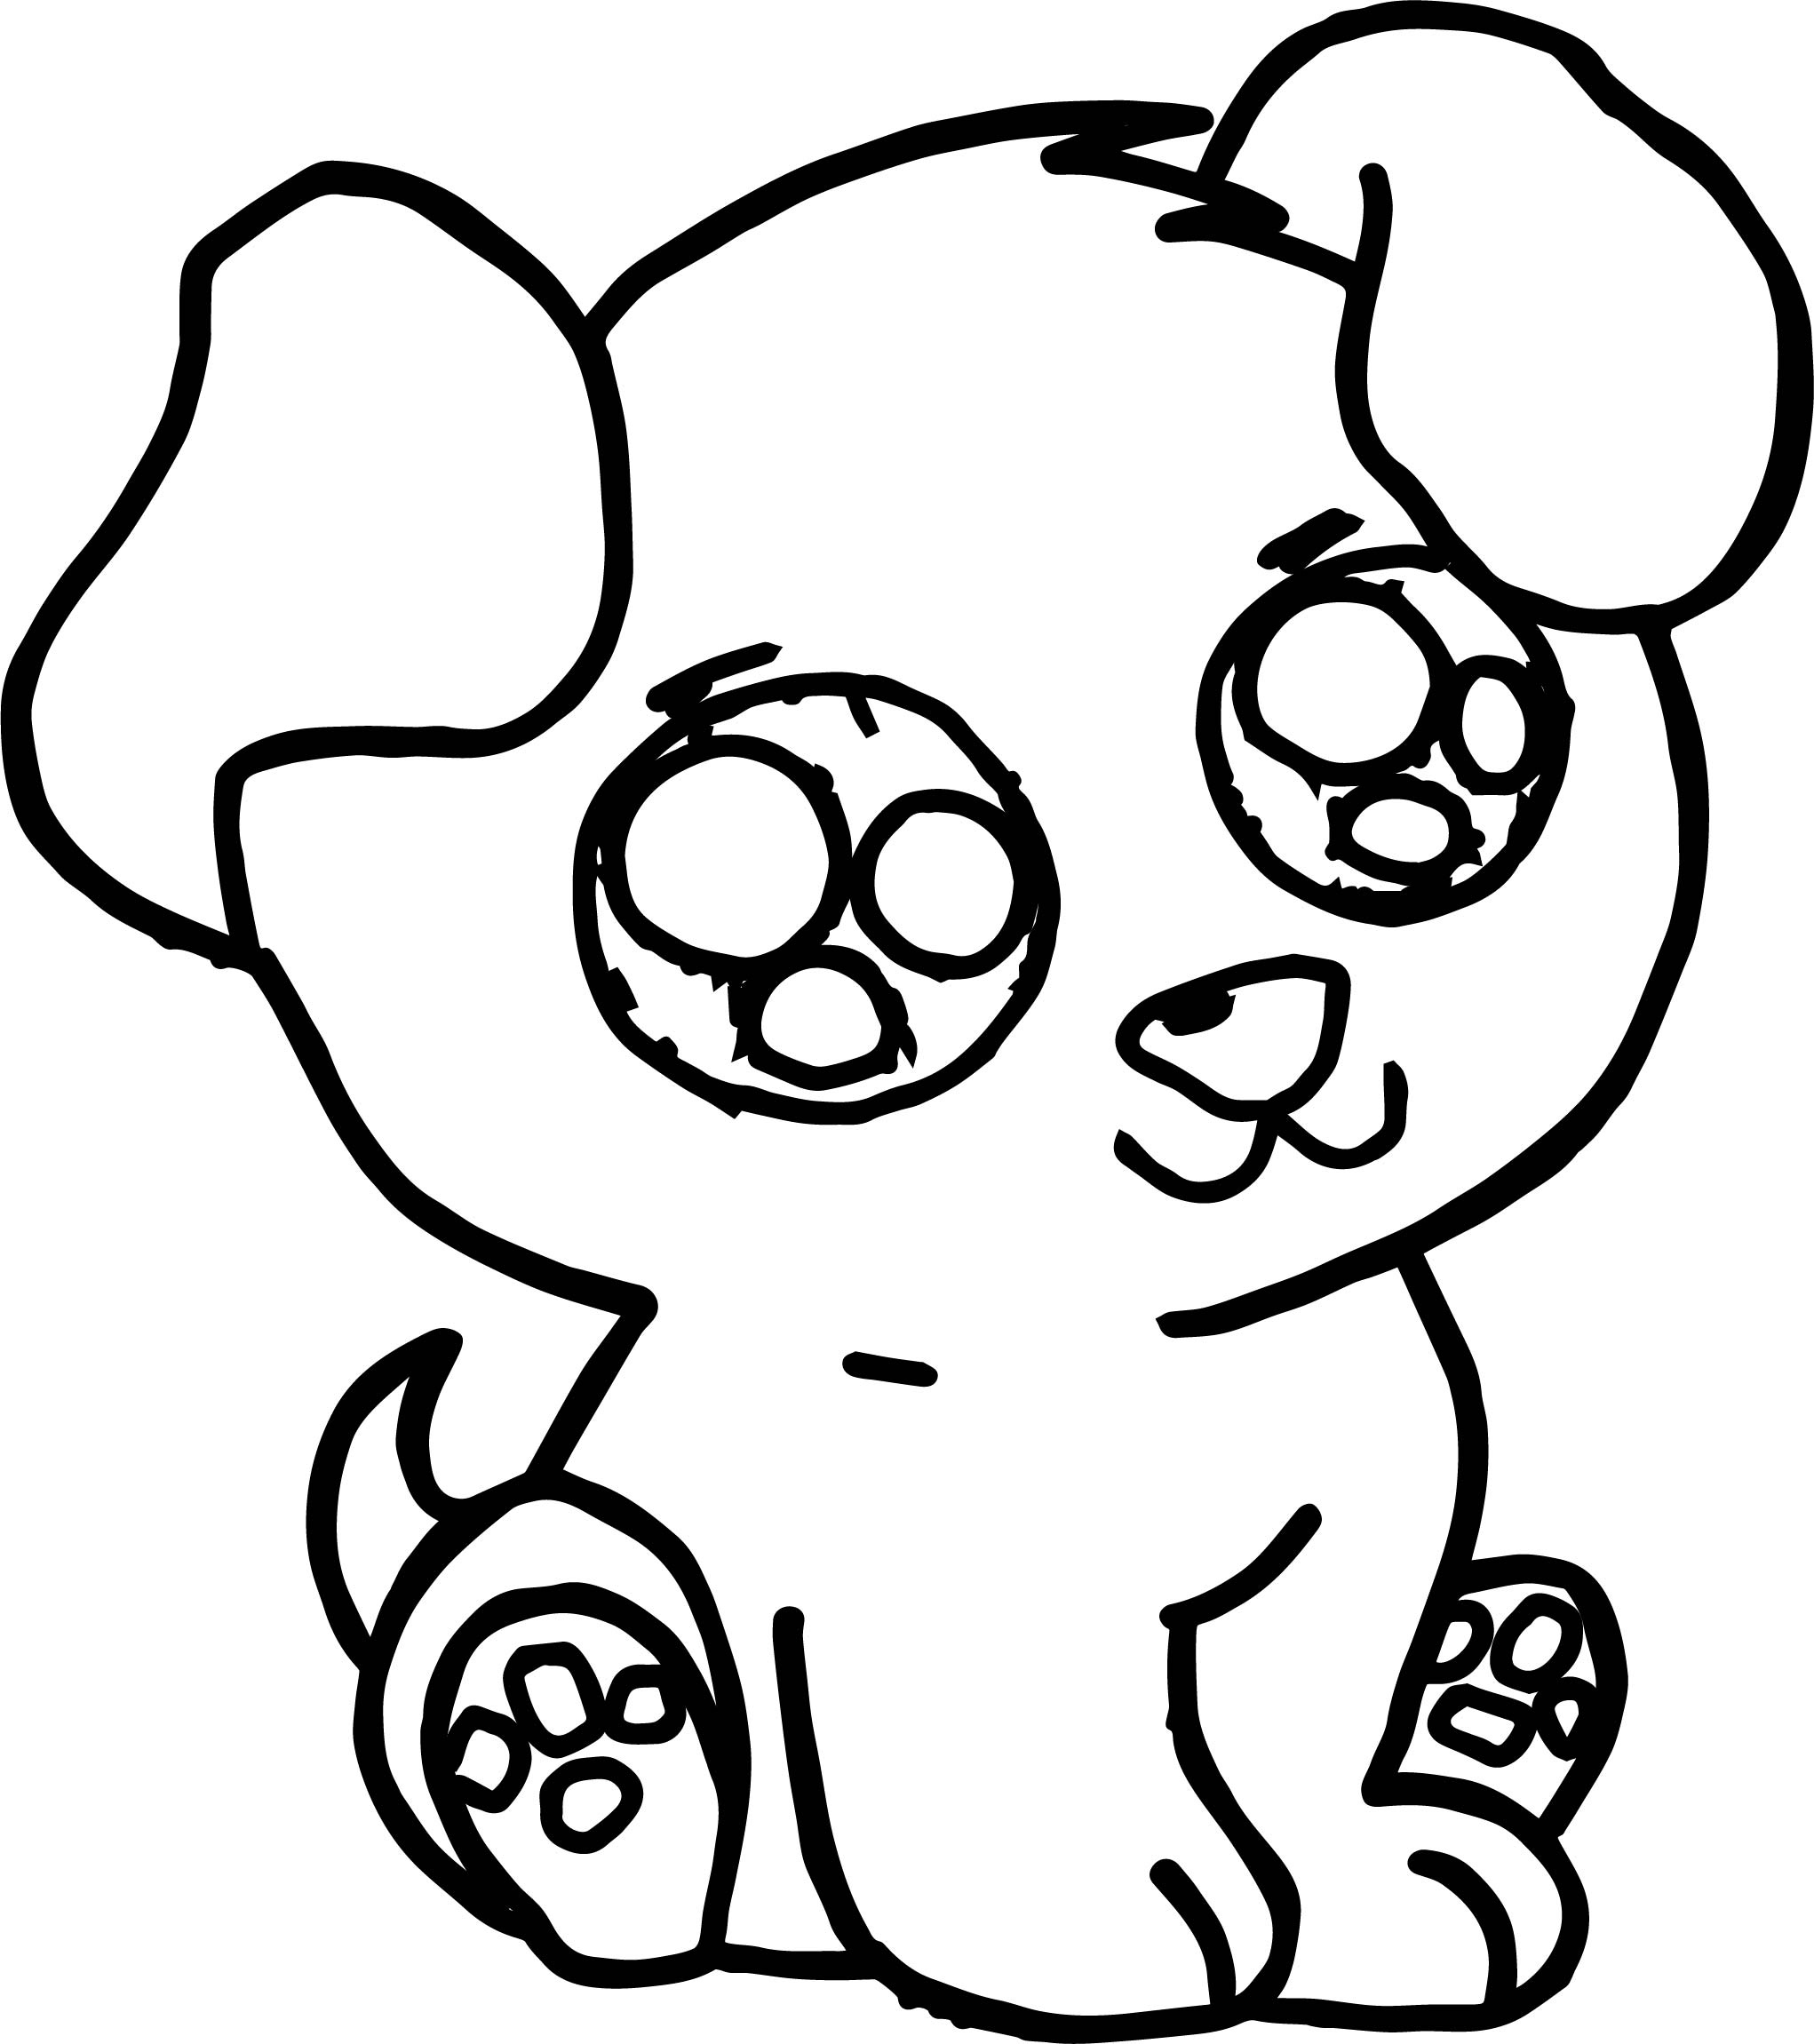 Cute Puppy Free Images Puppy Dog Coloring Page Wecoloringpage